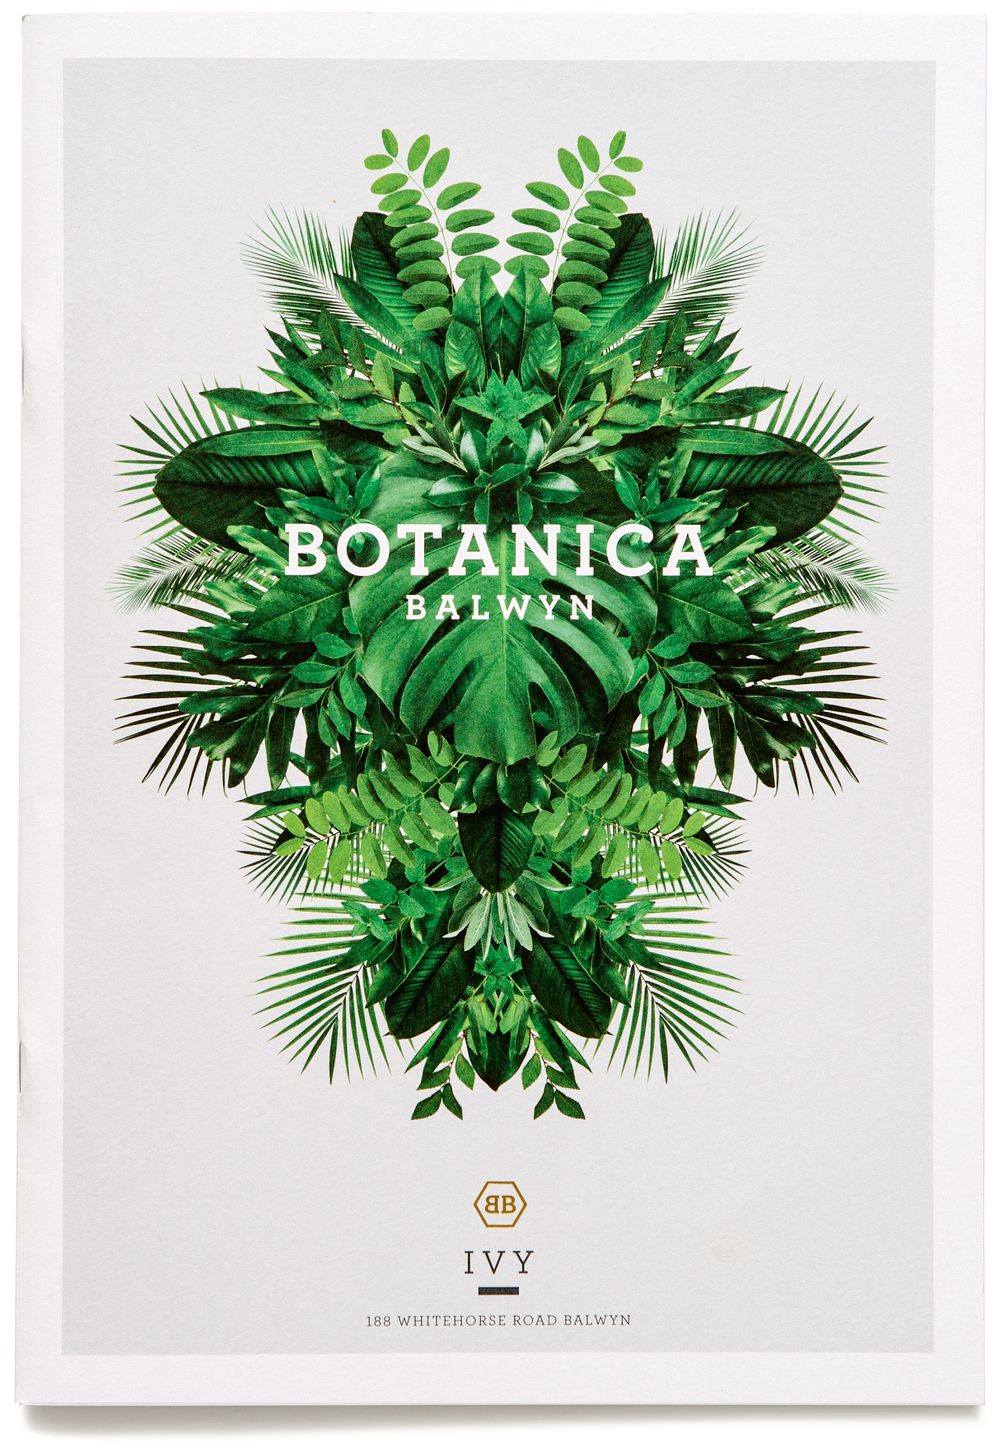 'Botanica' apartment brochure